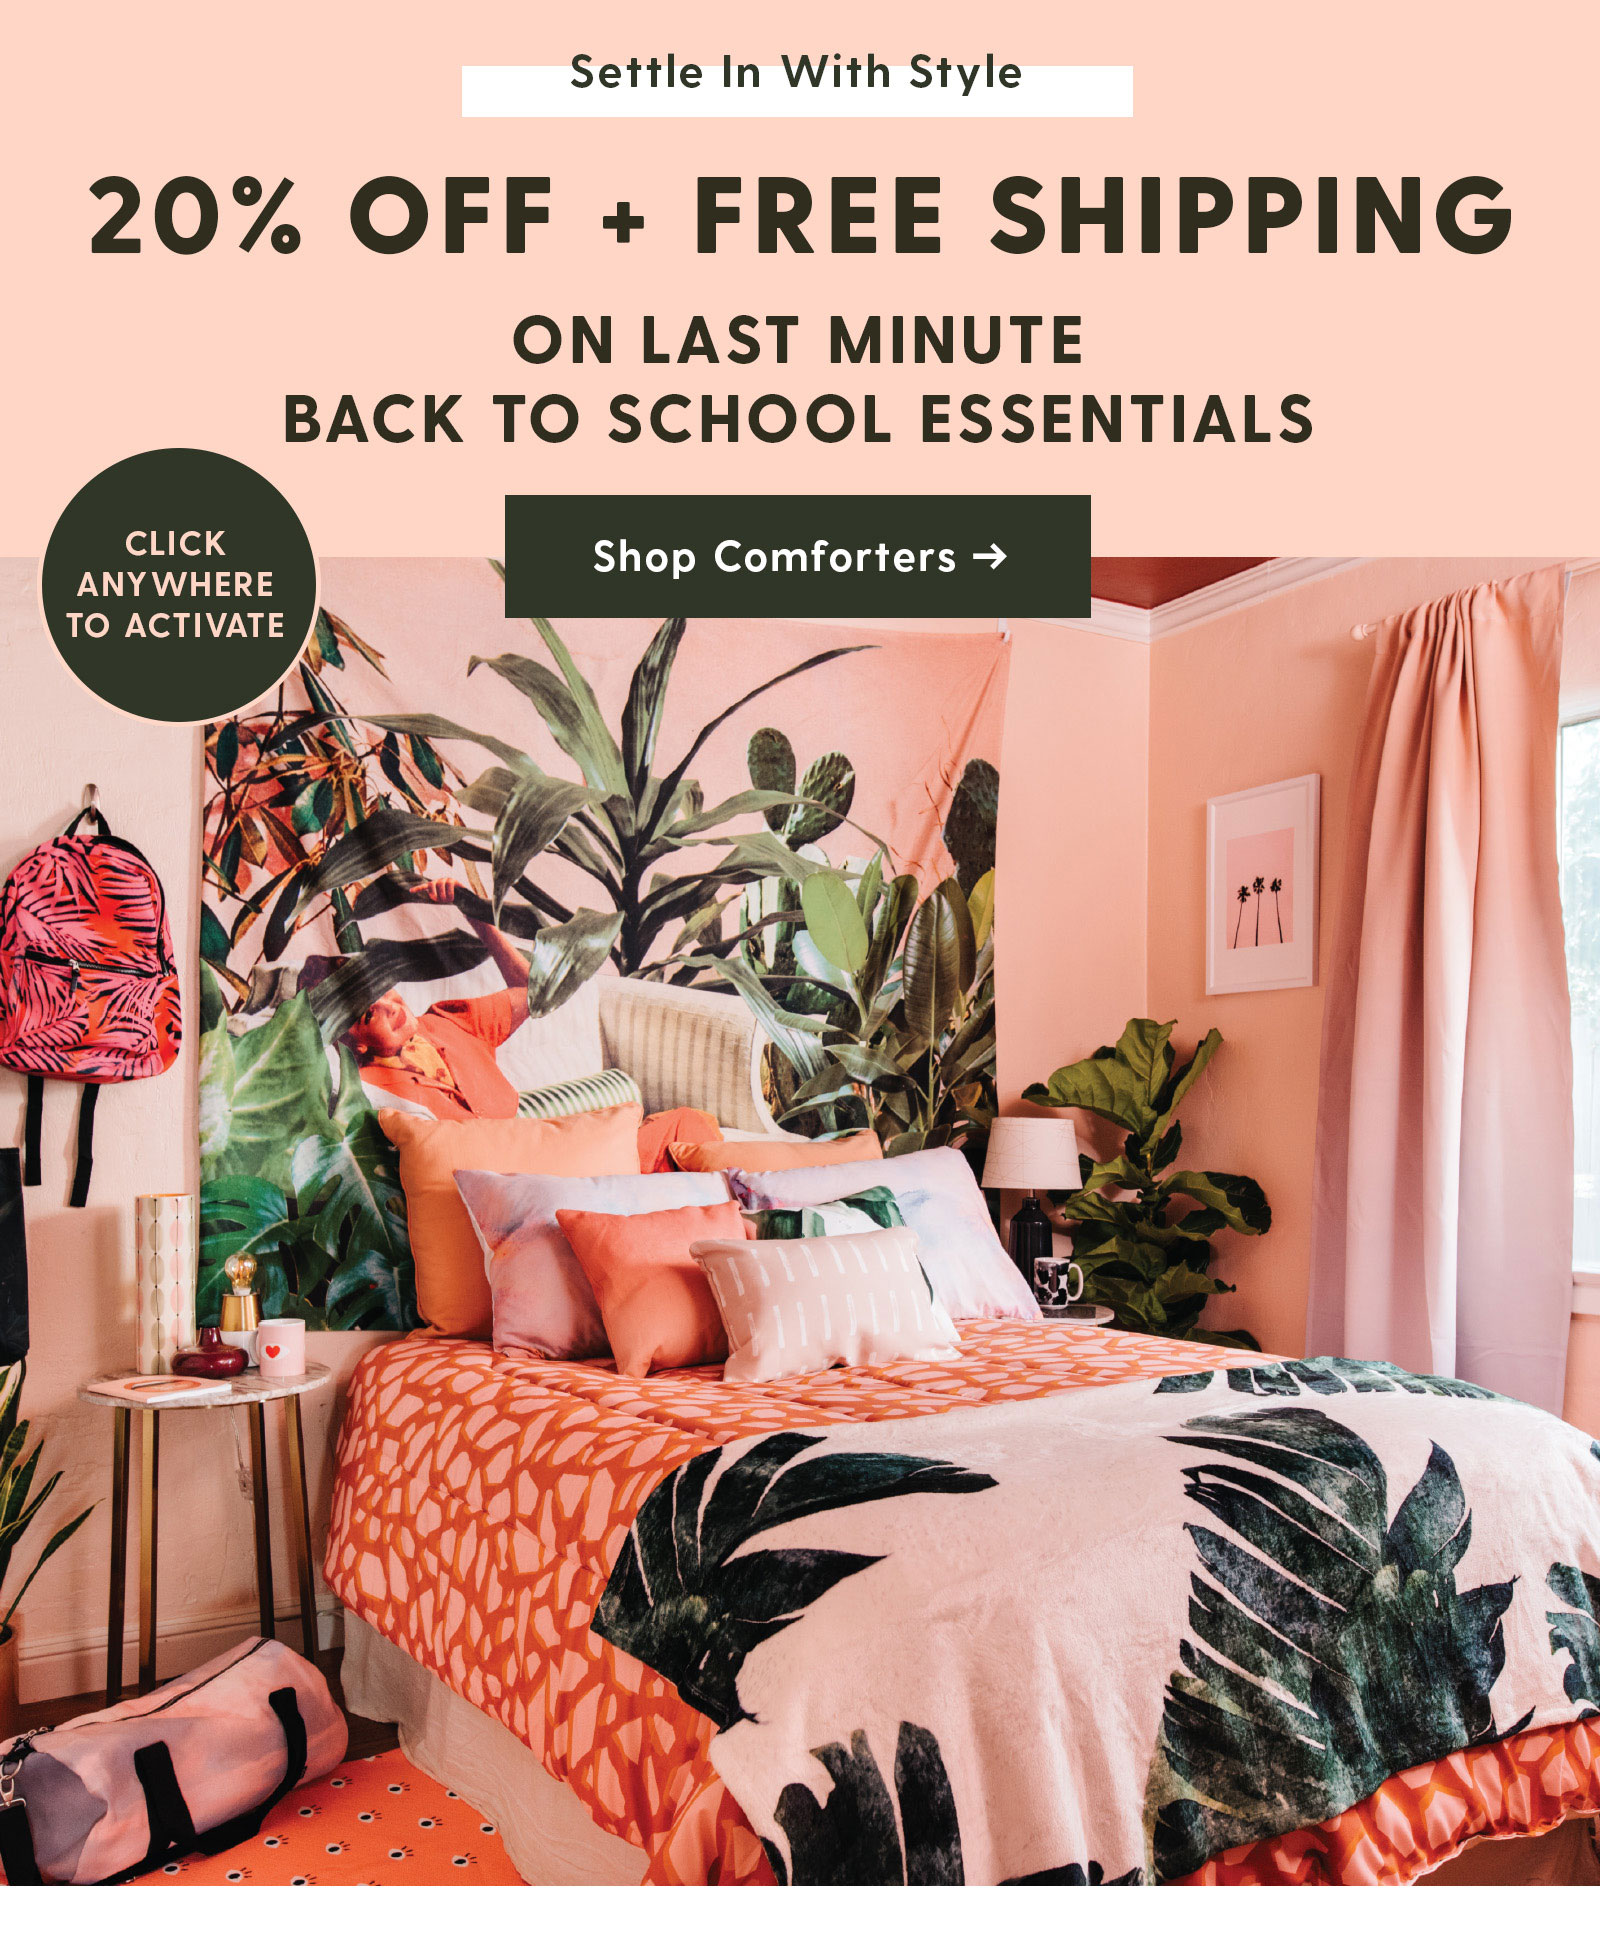 20% Off Last Minute Back to School Essentials. SHOP COMFORTERS